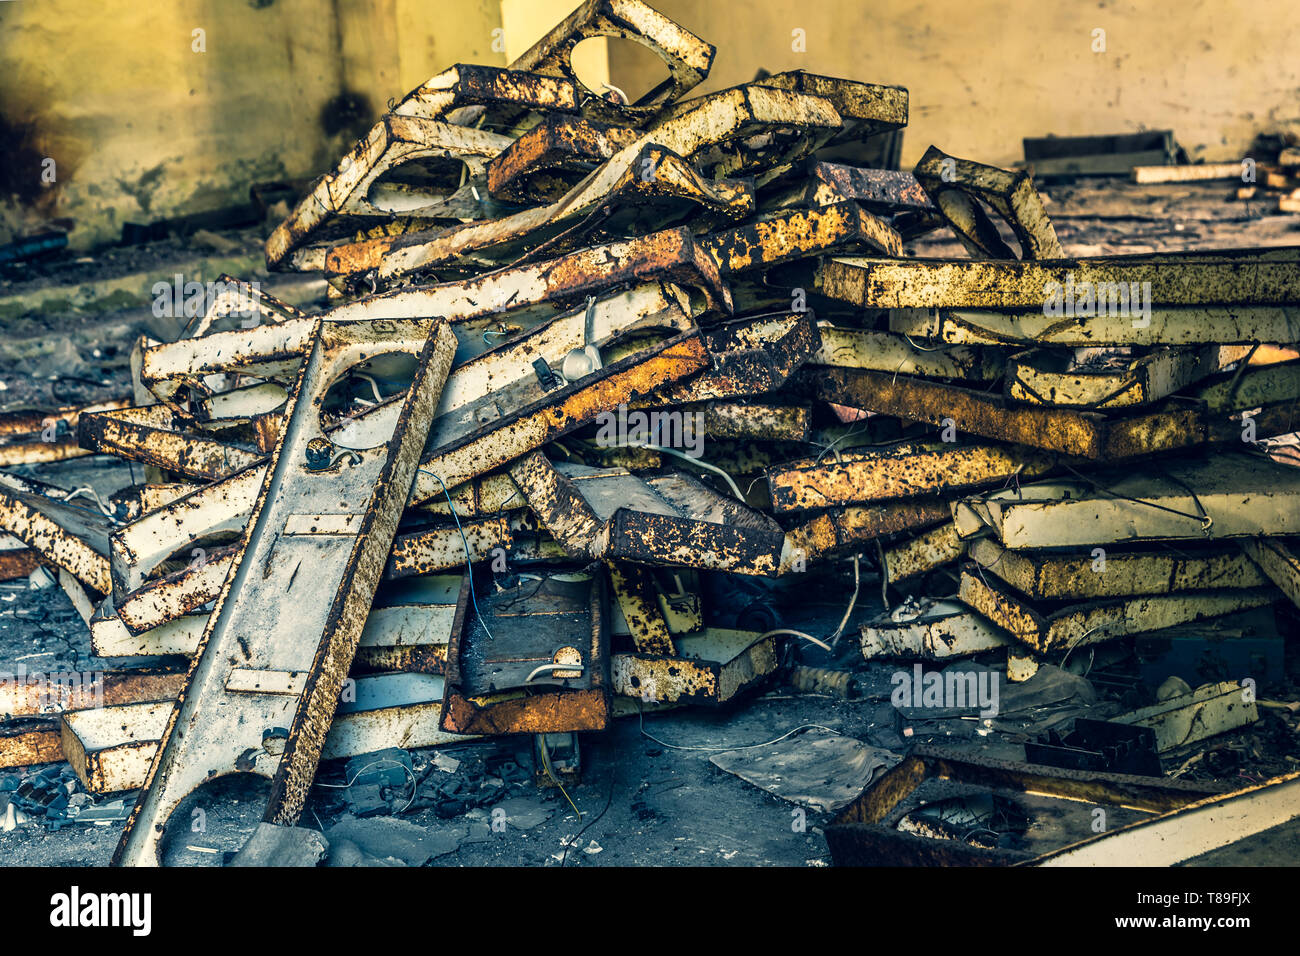 Pile of rusted old steel in an abandoned factory in Belarus Chernobyl exclusion zone, - Stock Image